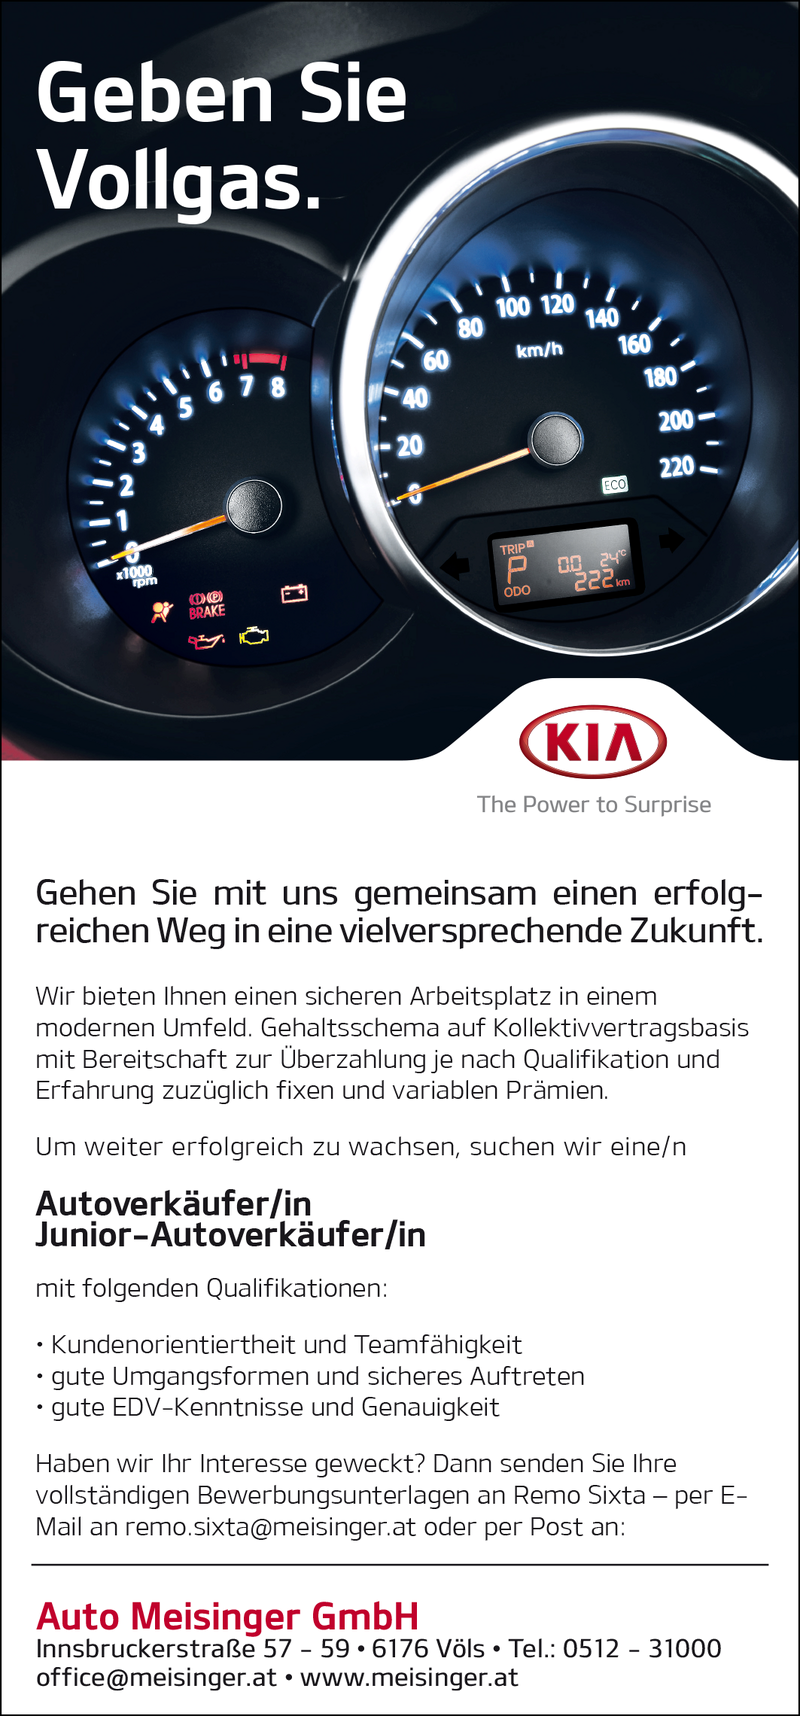 Autoverkäufer/in  - Junior-Autoverkäufer/in